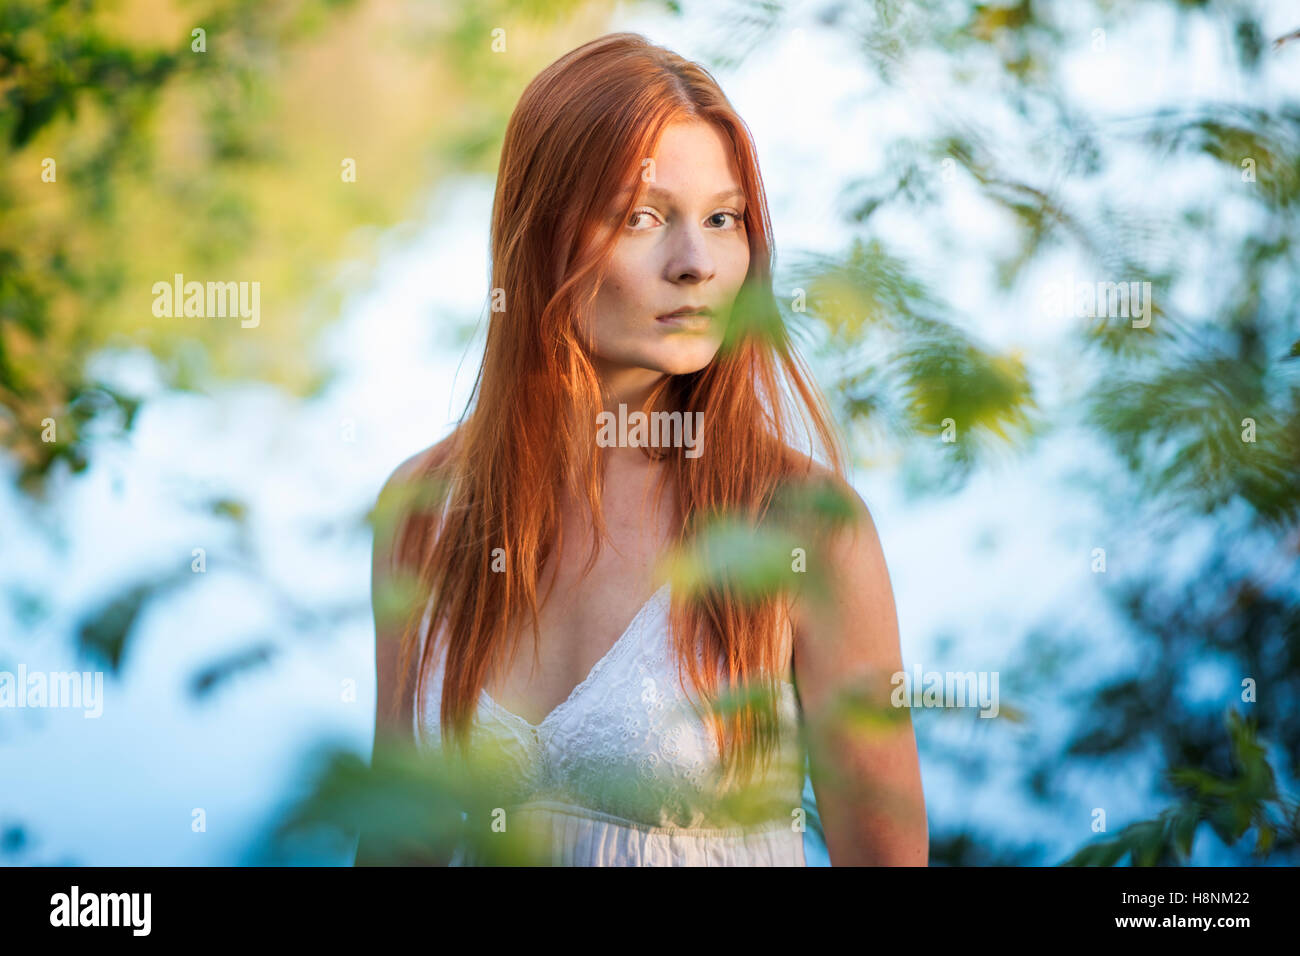 Portrait of young woman in forest Photo Stock